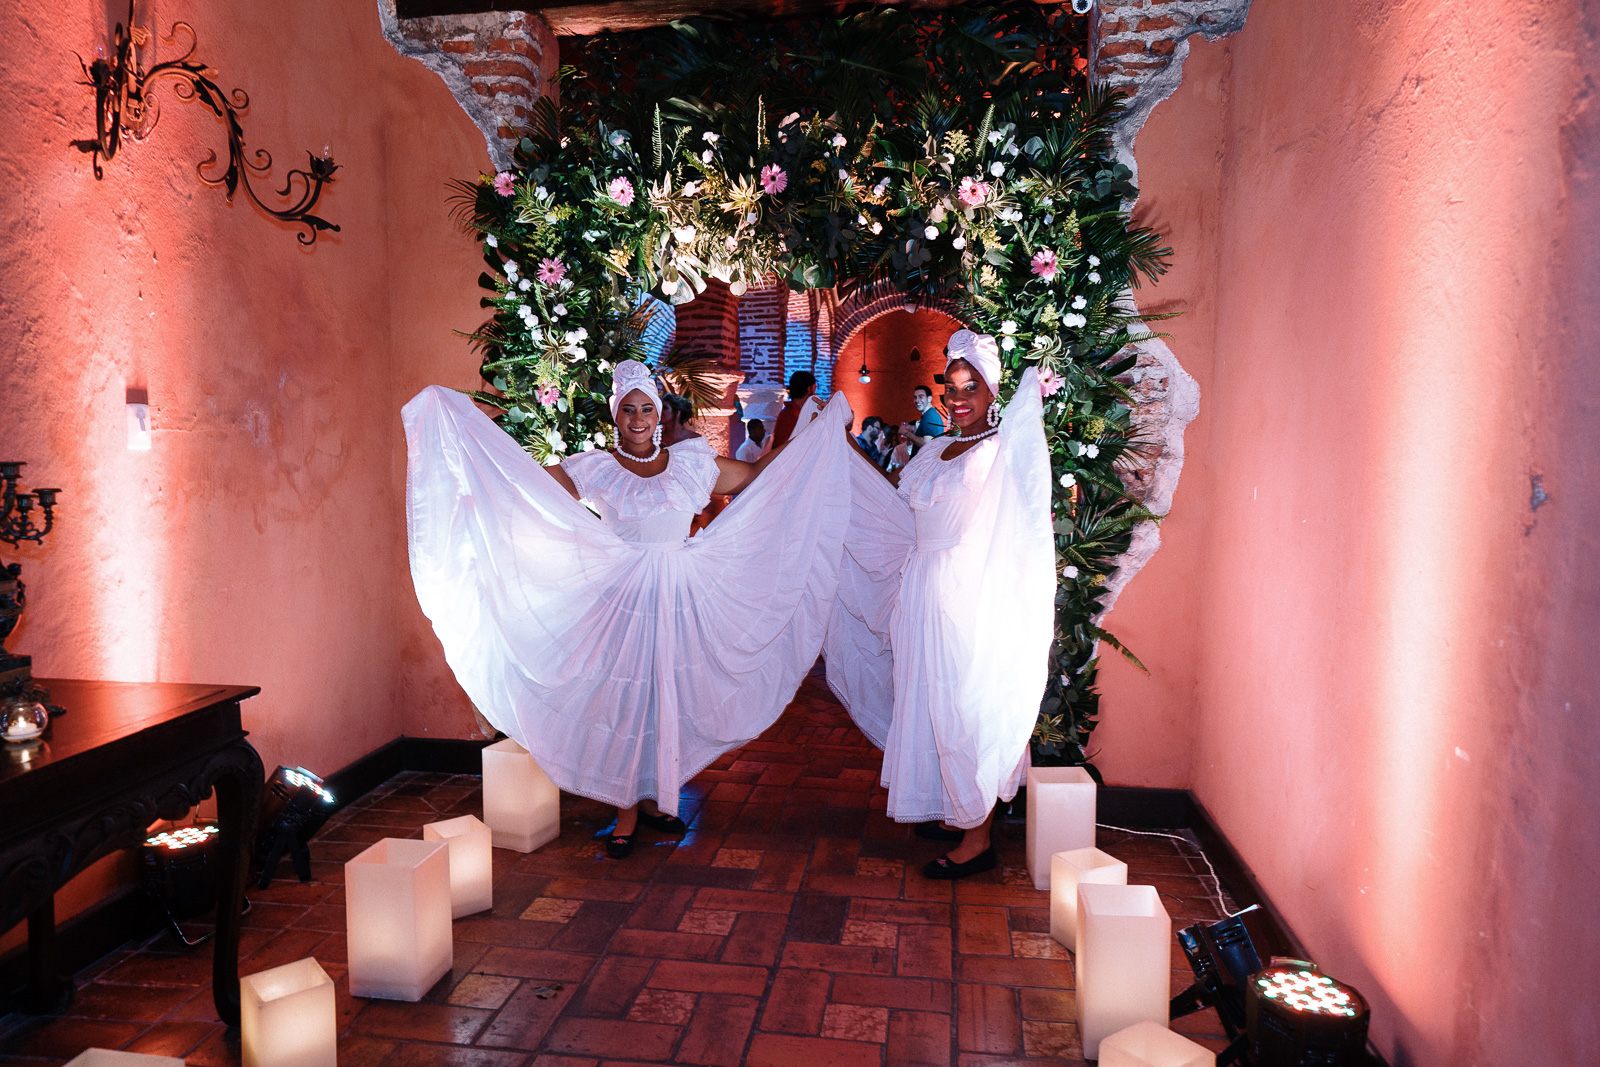 weding reception in south america for american couple